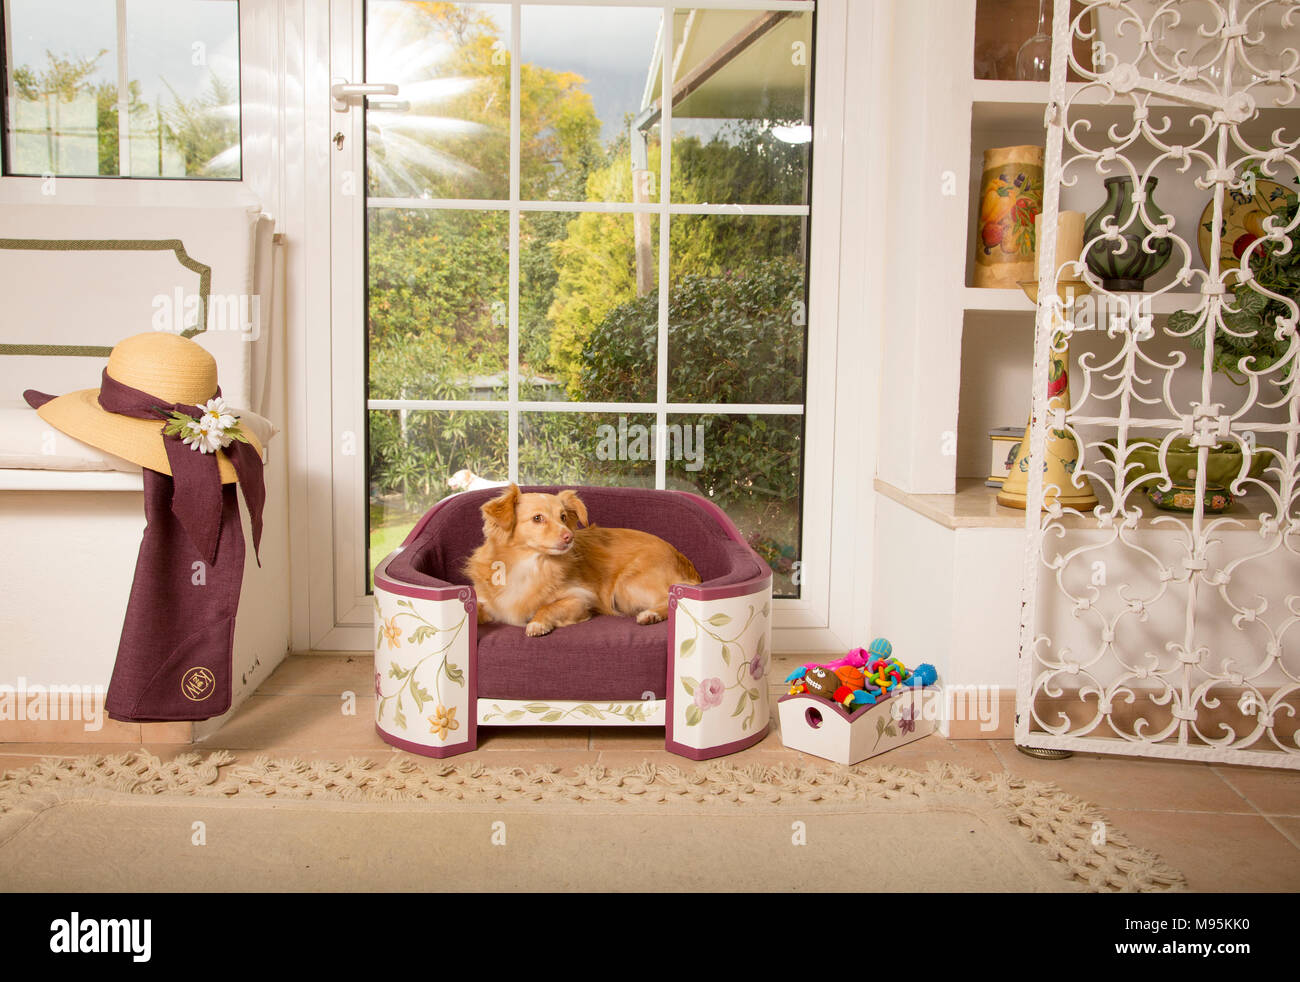 Home furnishing for pets, exquisite pet beds - Stock Image